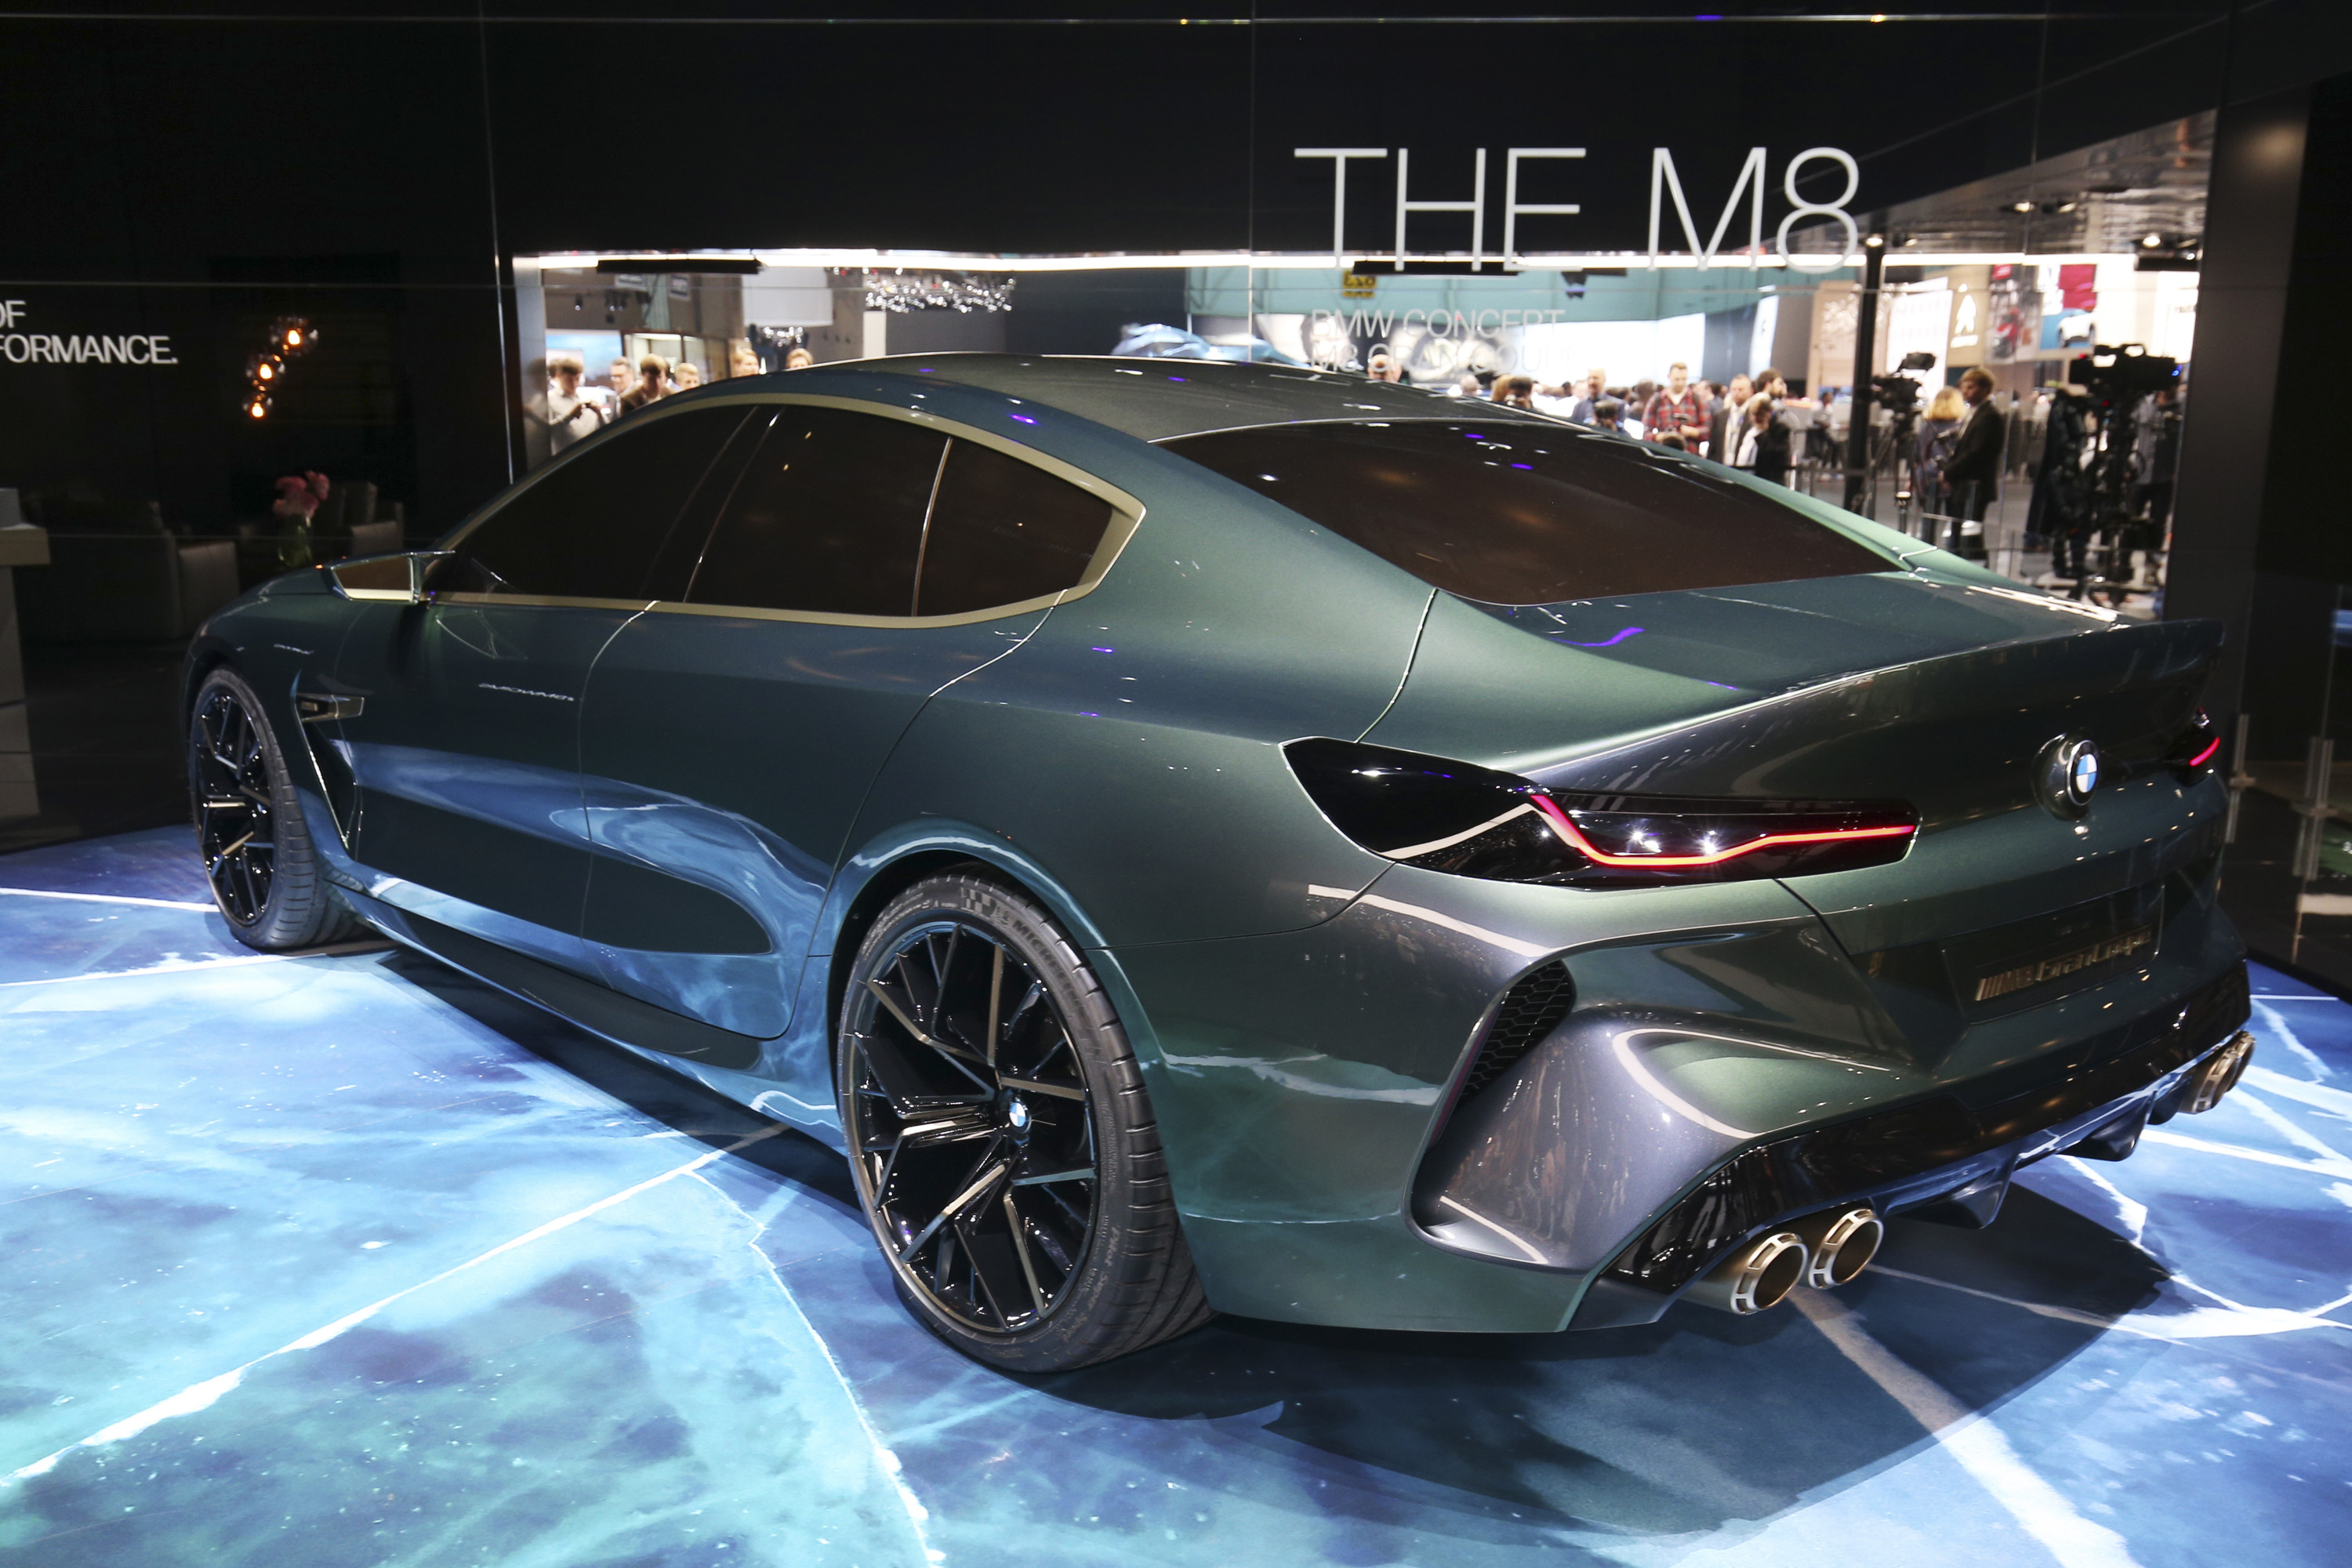 Bmw Continues To Drag Its Feet By Displaying The M8 Gran Coupe